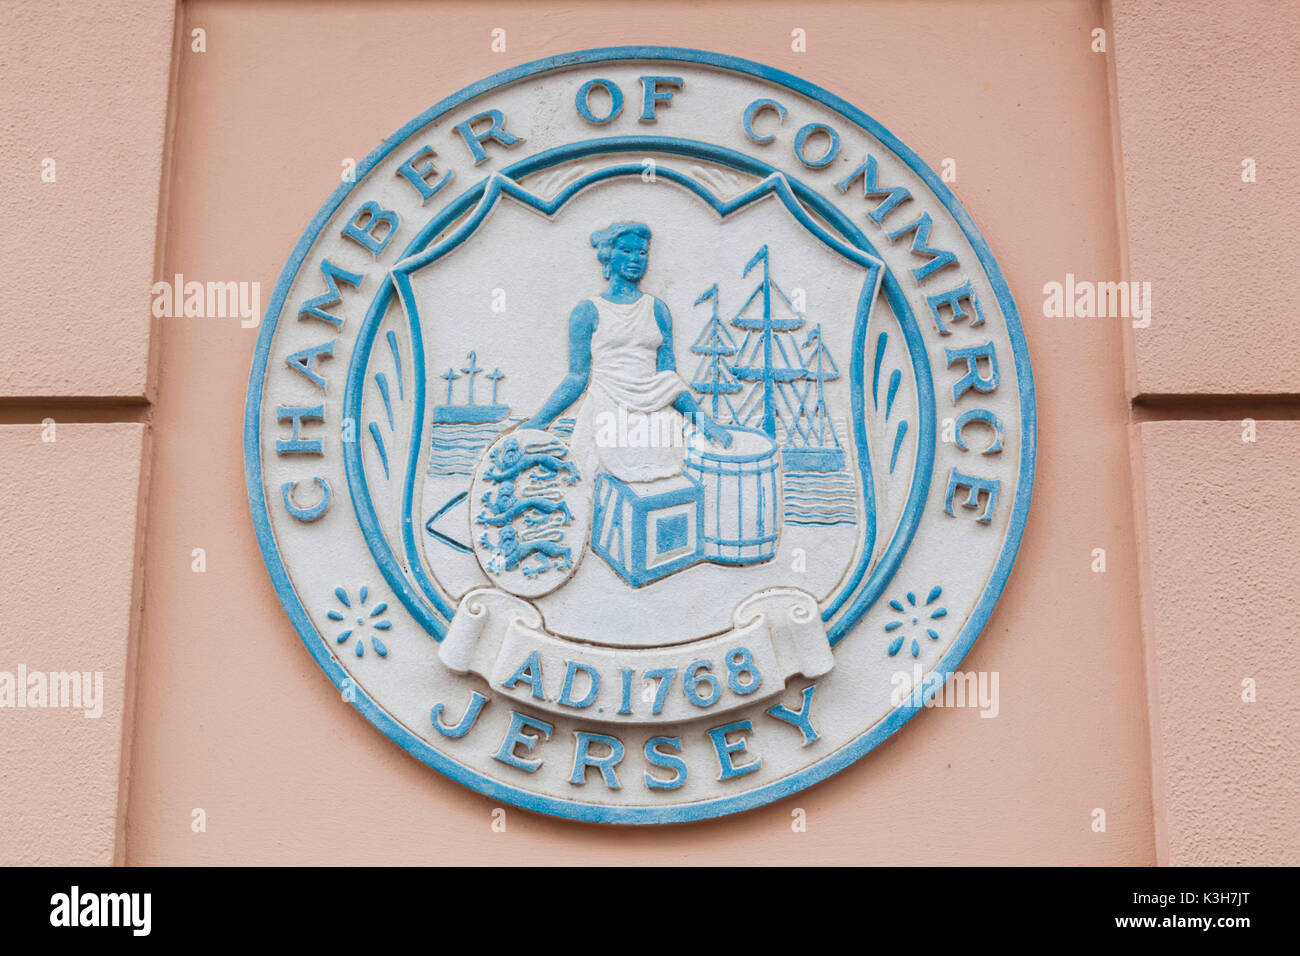 United Kingdom, Channel Islands, Jersey, St.Helier, Blue Plaque on Wall of The Chamber of Commerce Building - Stock Image